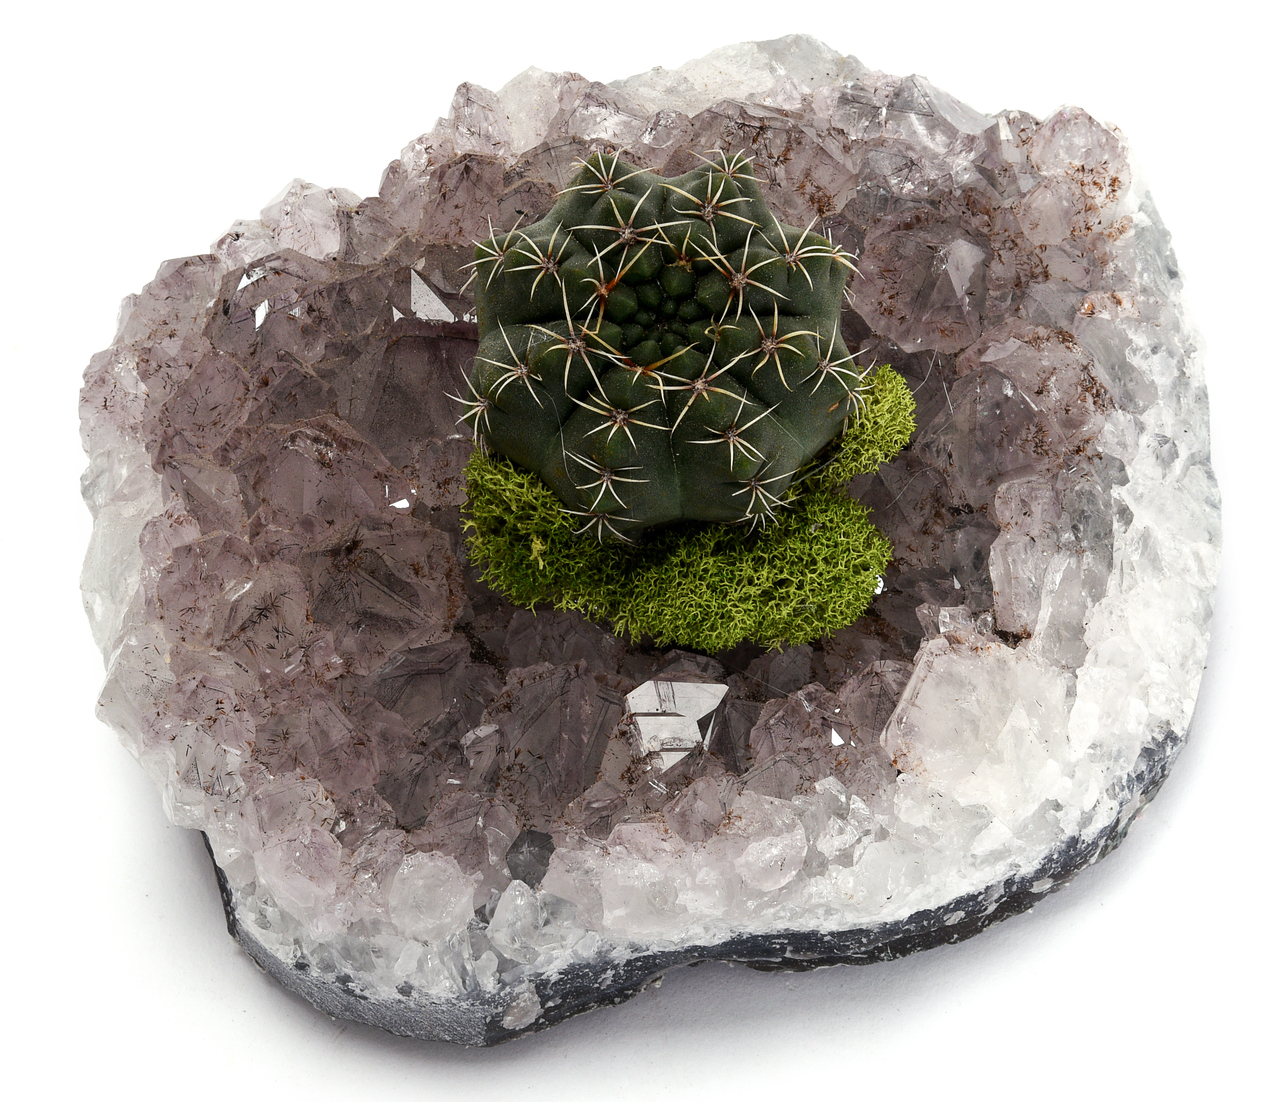 Amethyst Crystal with Cactus